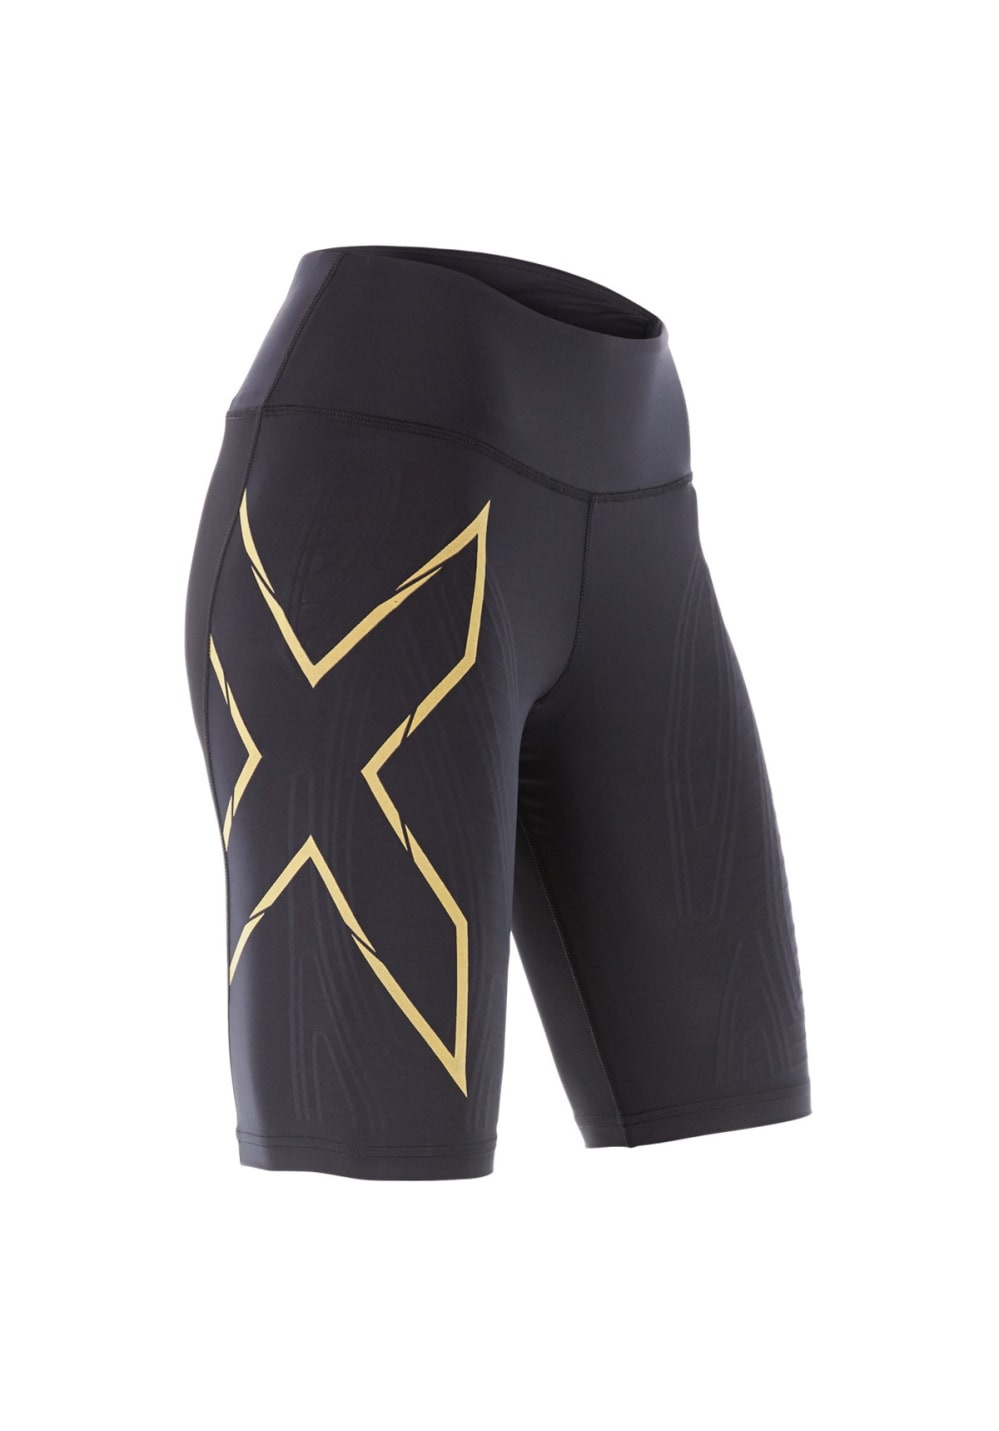 2XU Elite MCS Run Compression Short - Kompression für Damen - Schwarz